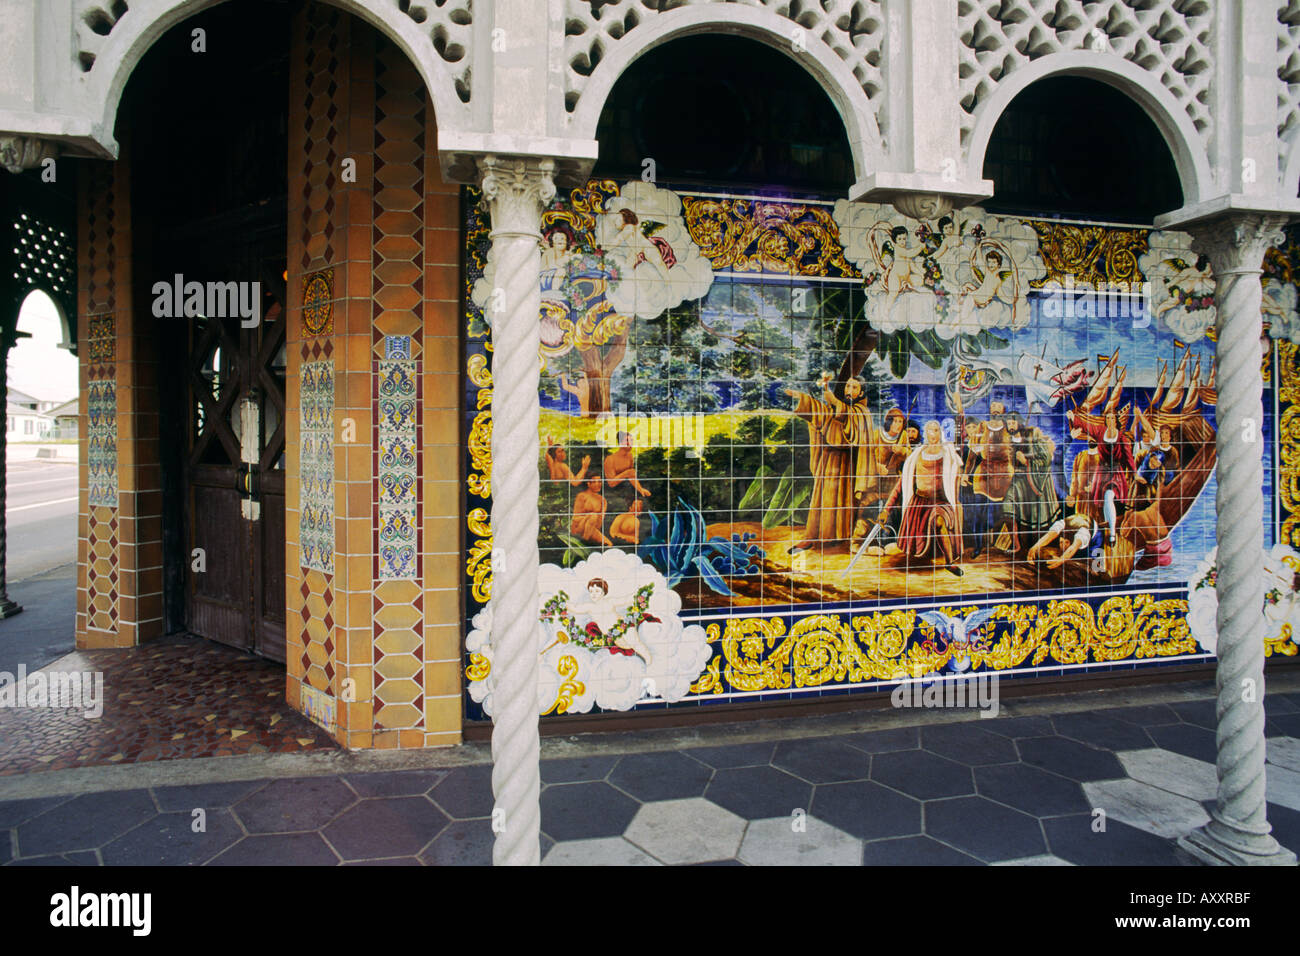 Famous original tile mosaic mural pictures adorn the Columbia Restaurant in the Cuban district of Ybor City, Tampa, Florida, USA - Stock Image